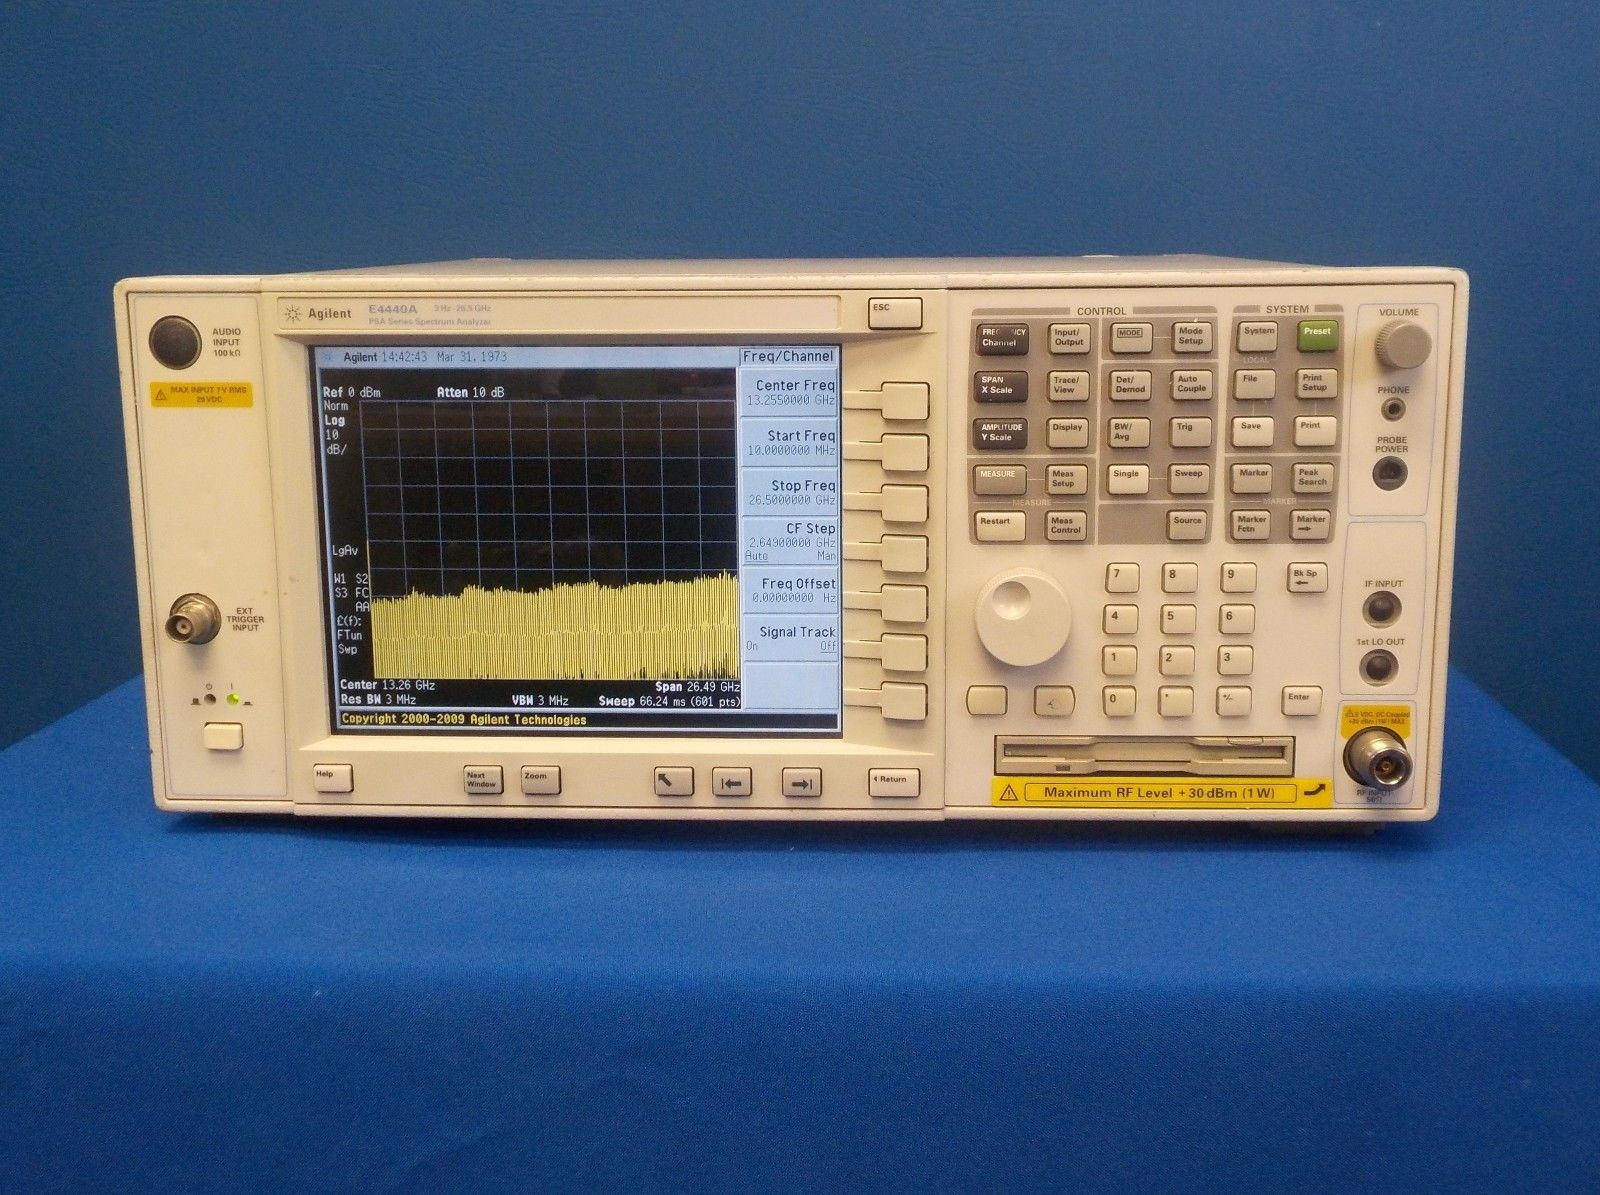 agilent-spectrum-analyzer-opt-e4440a-w-115-204-210-bt8-b7j-bac-baf-3hz-26-5-ghz-0.jpg